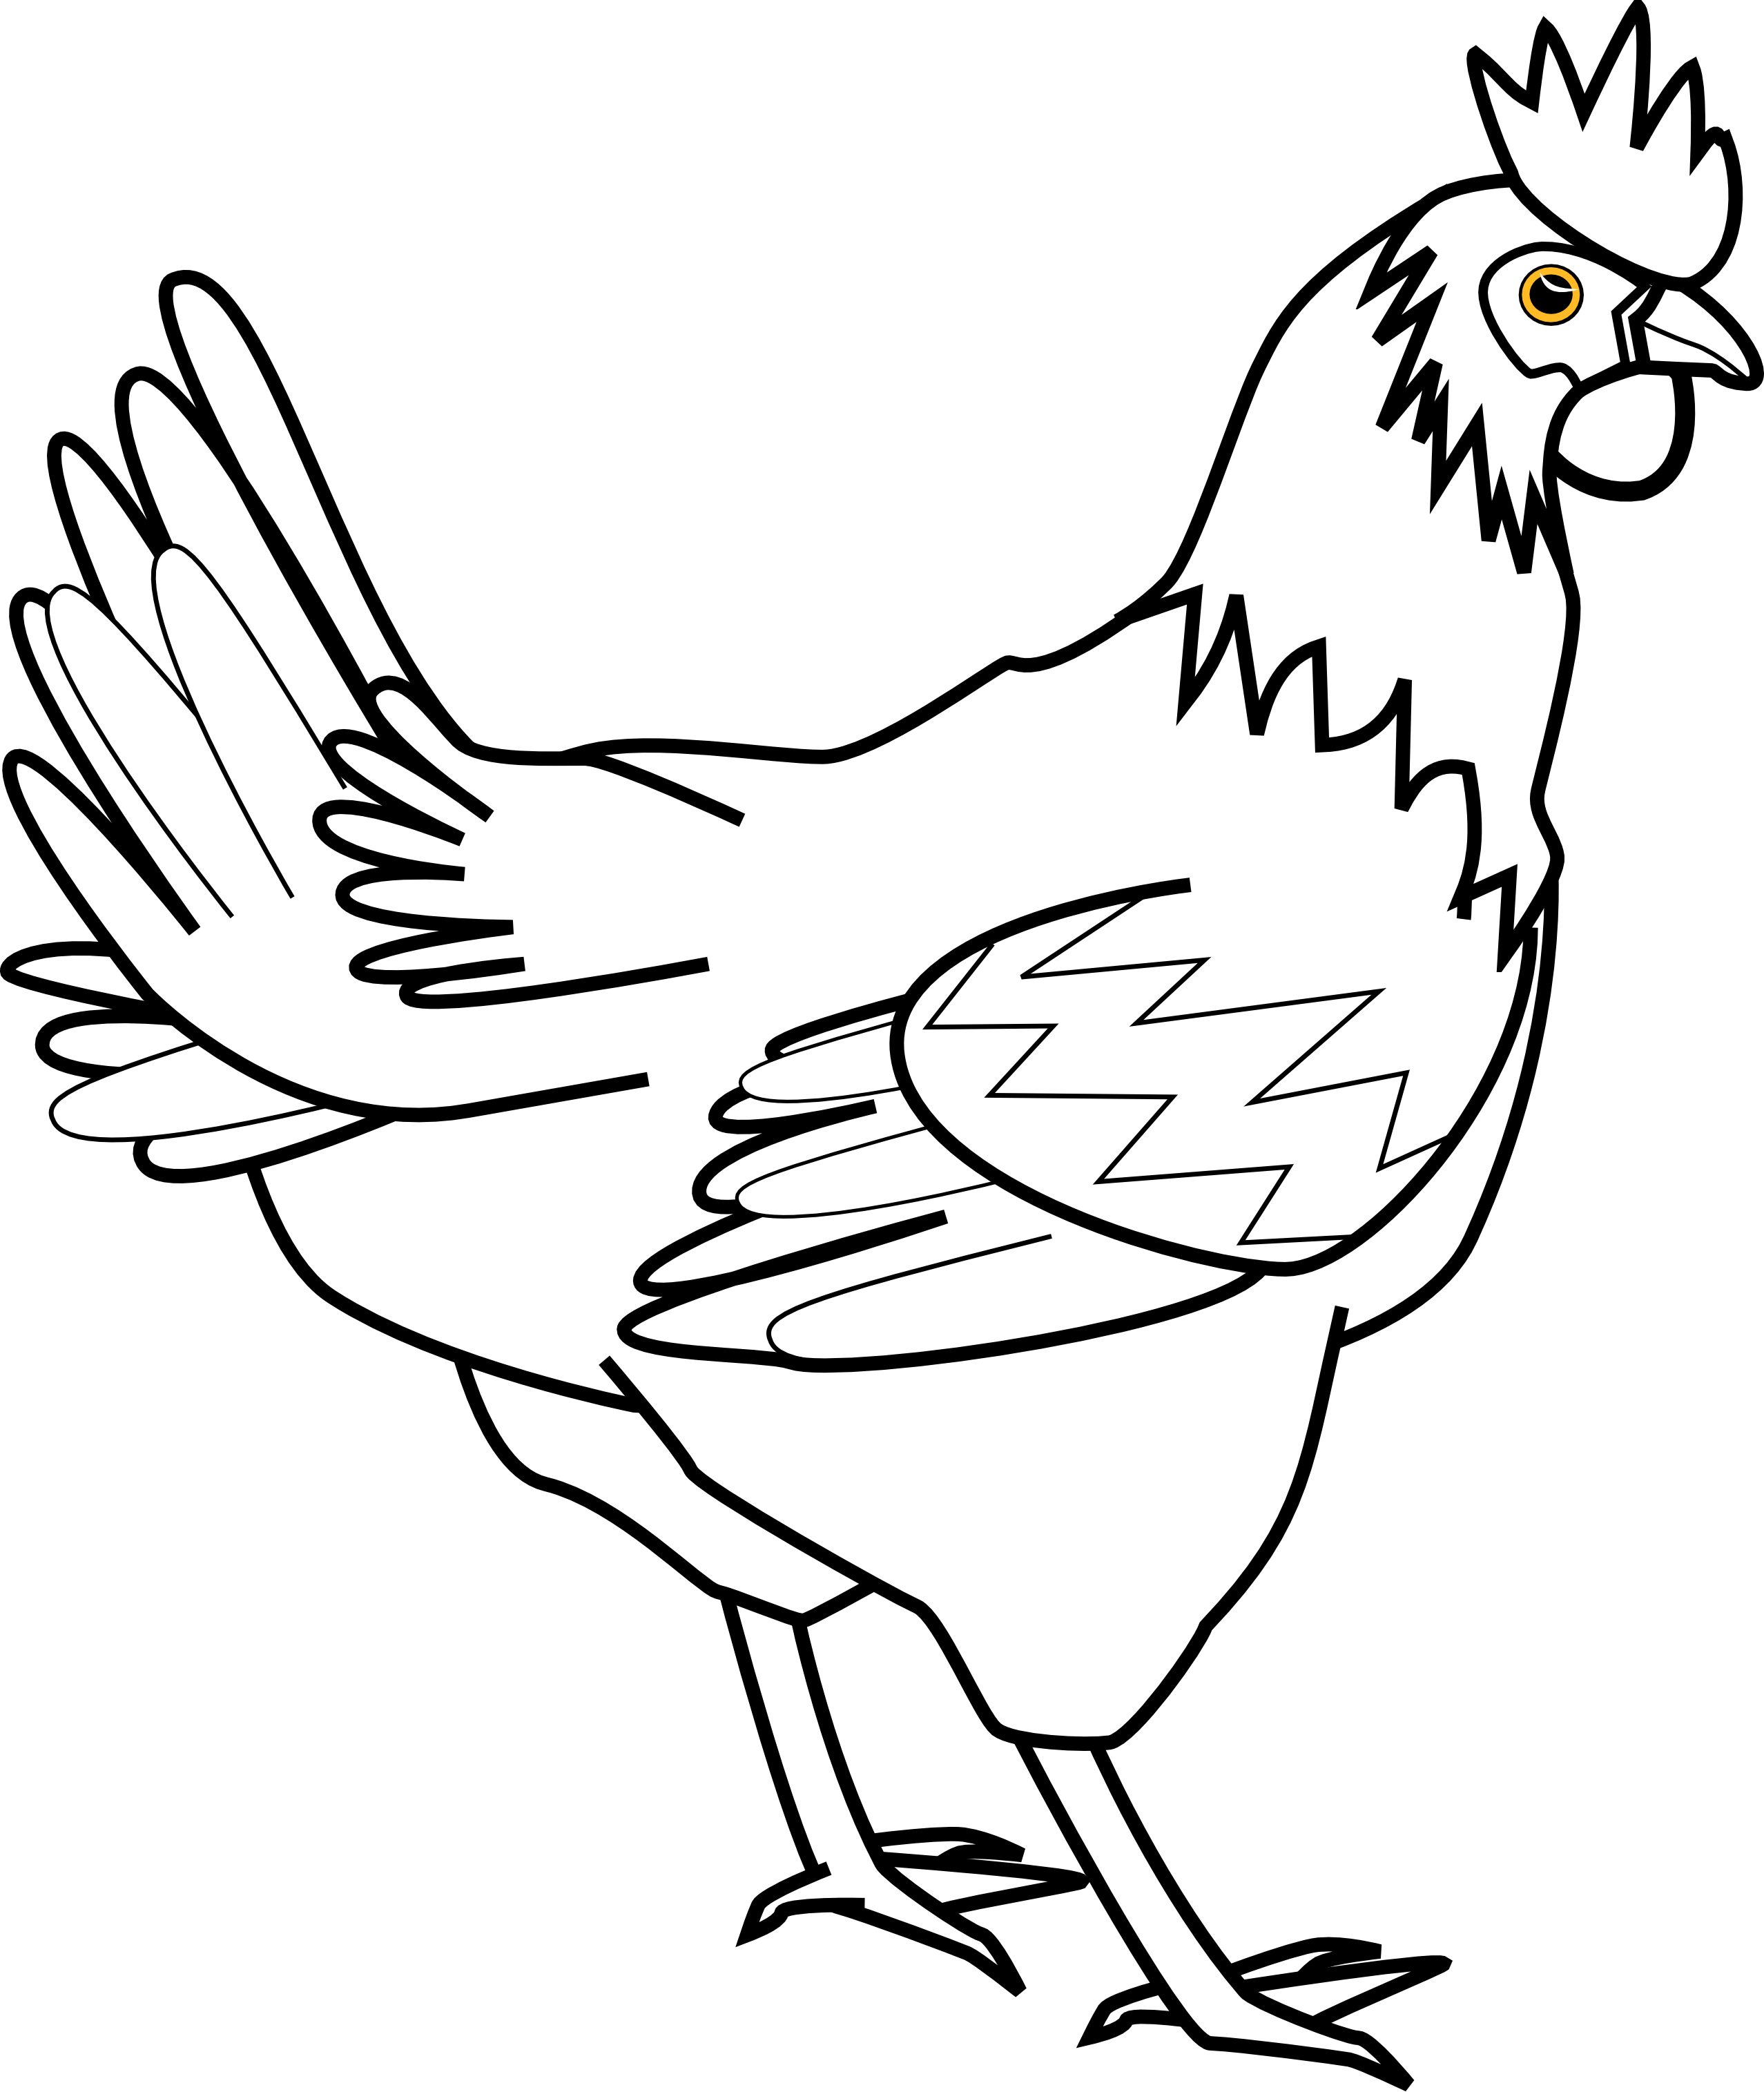 Clip Art Chicken Clipart Black And White cooked chicken clipart black and white panda free